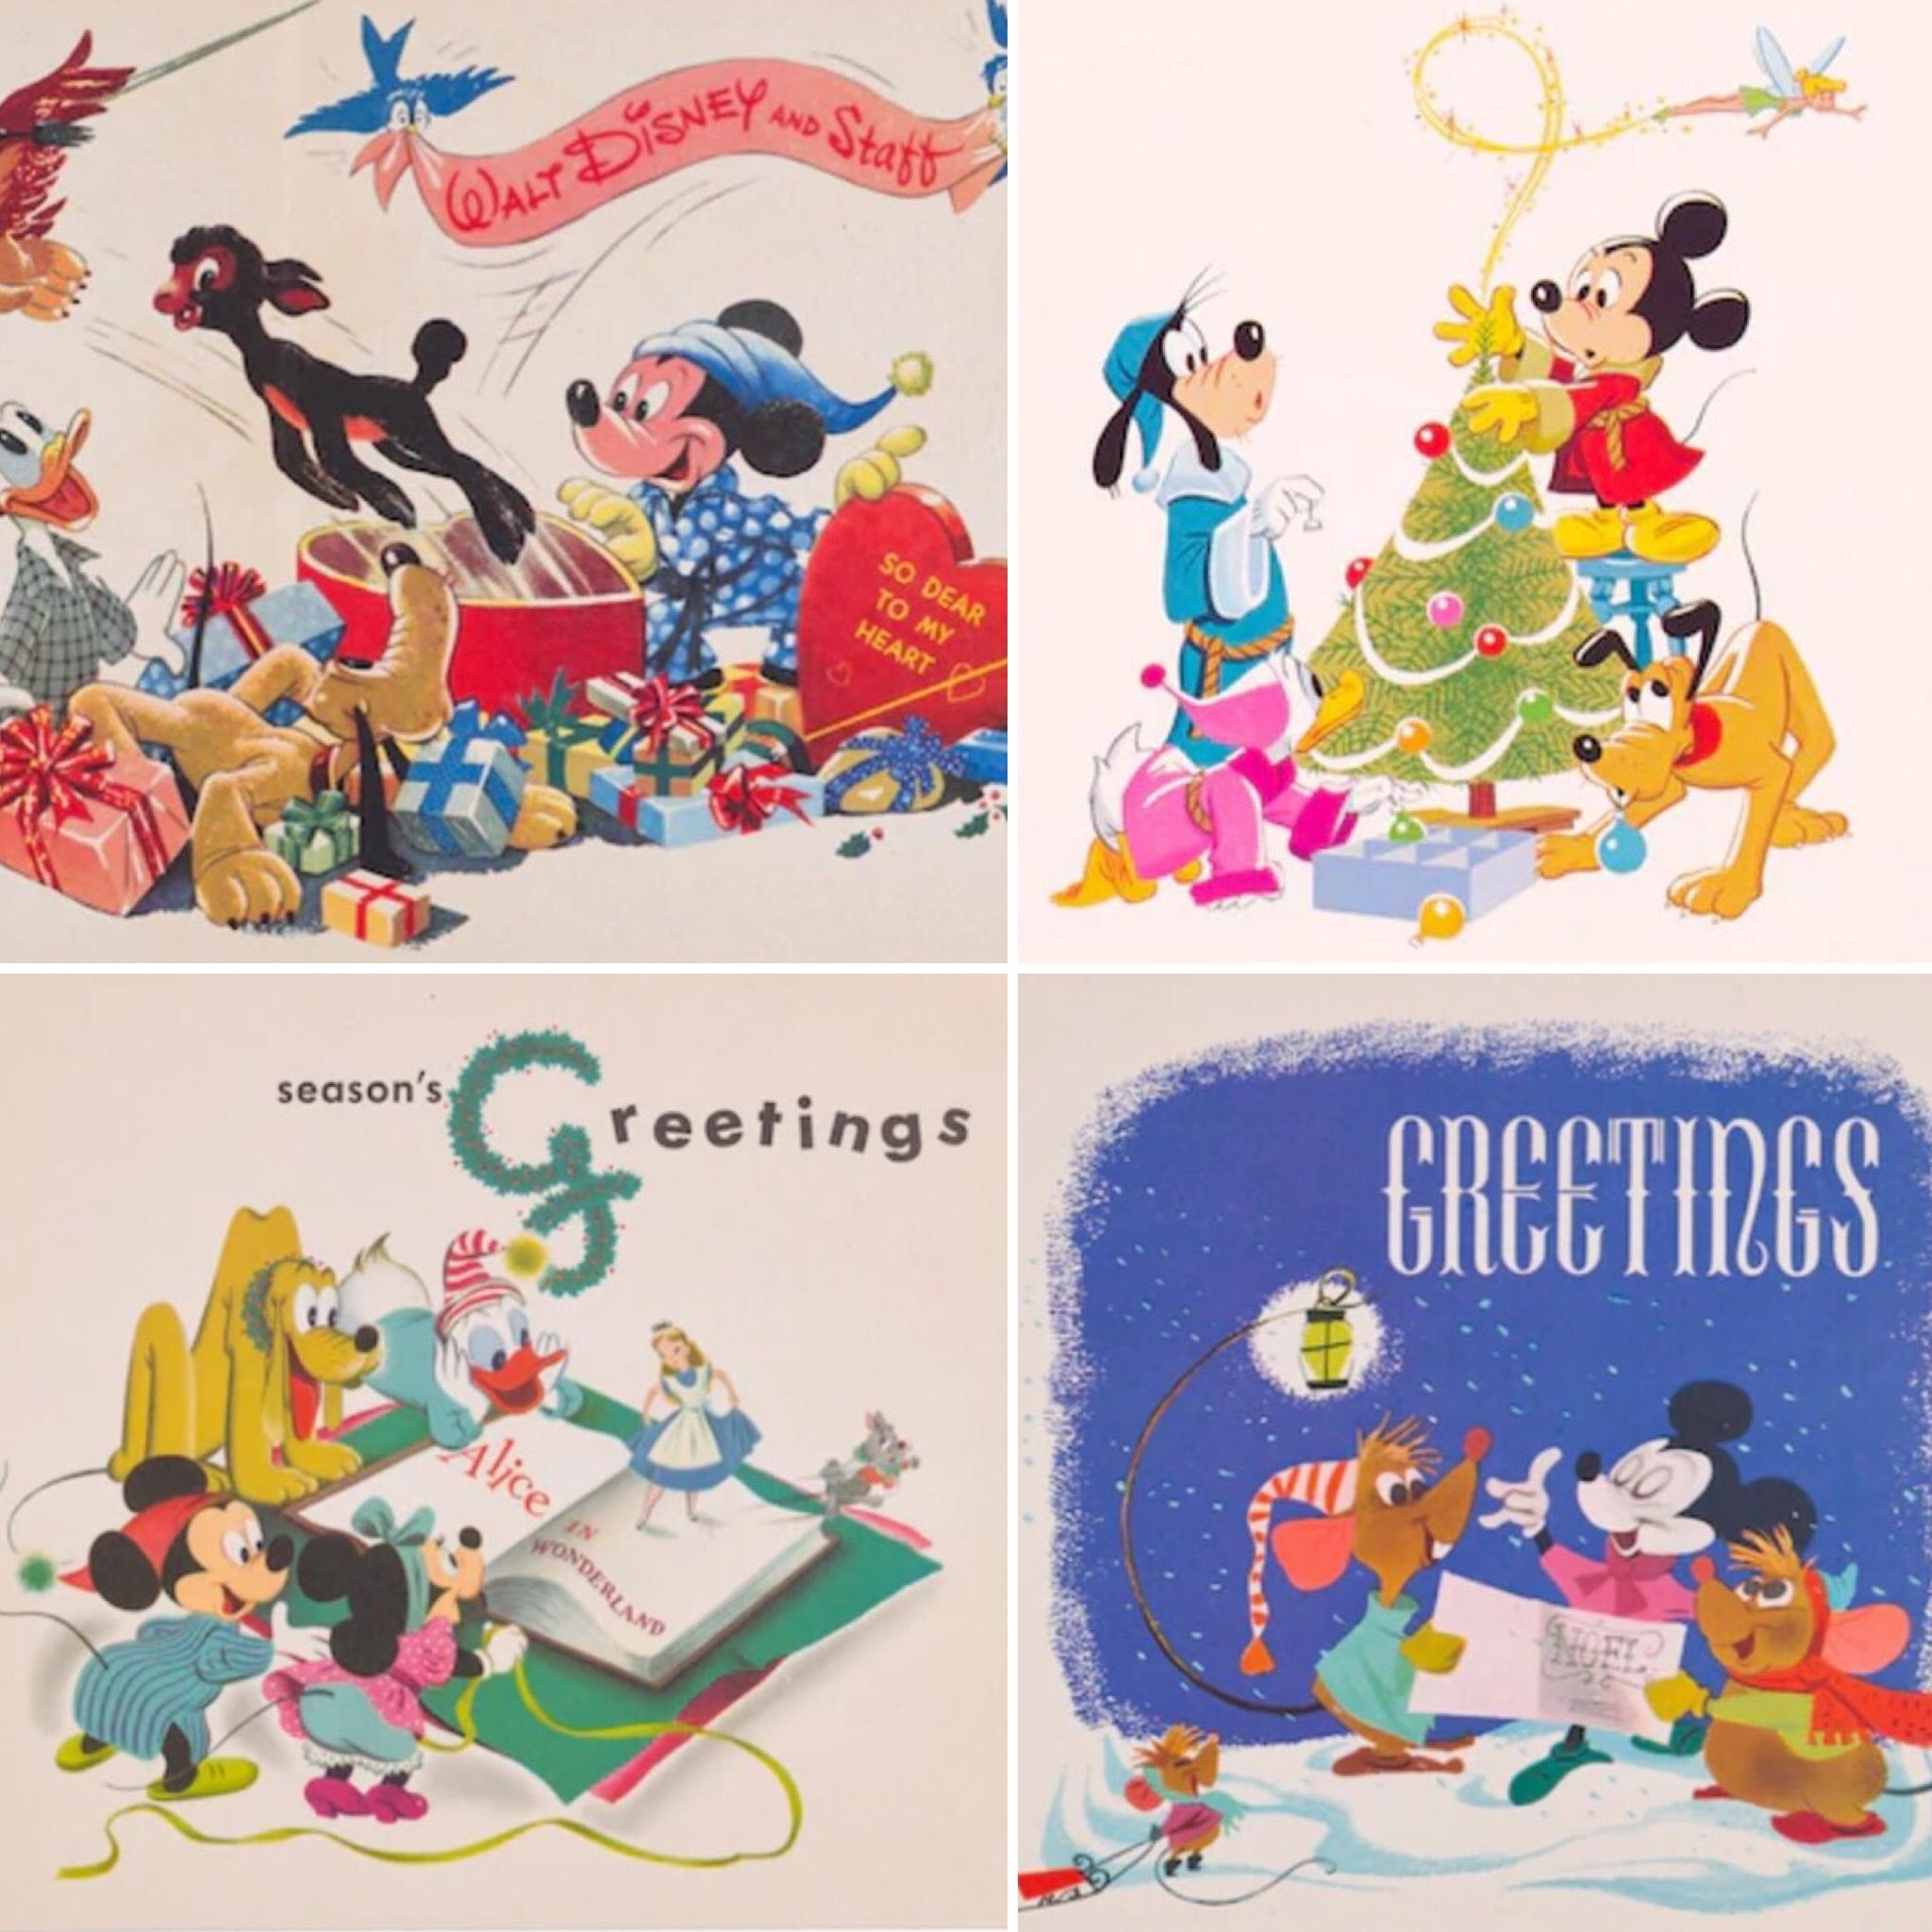 Disney Christmas Cards.Vintage Disney Christmas Cards Disney Christmas In 2019